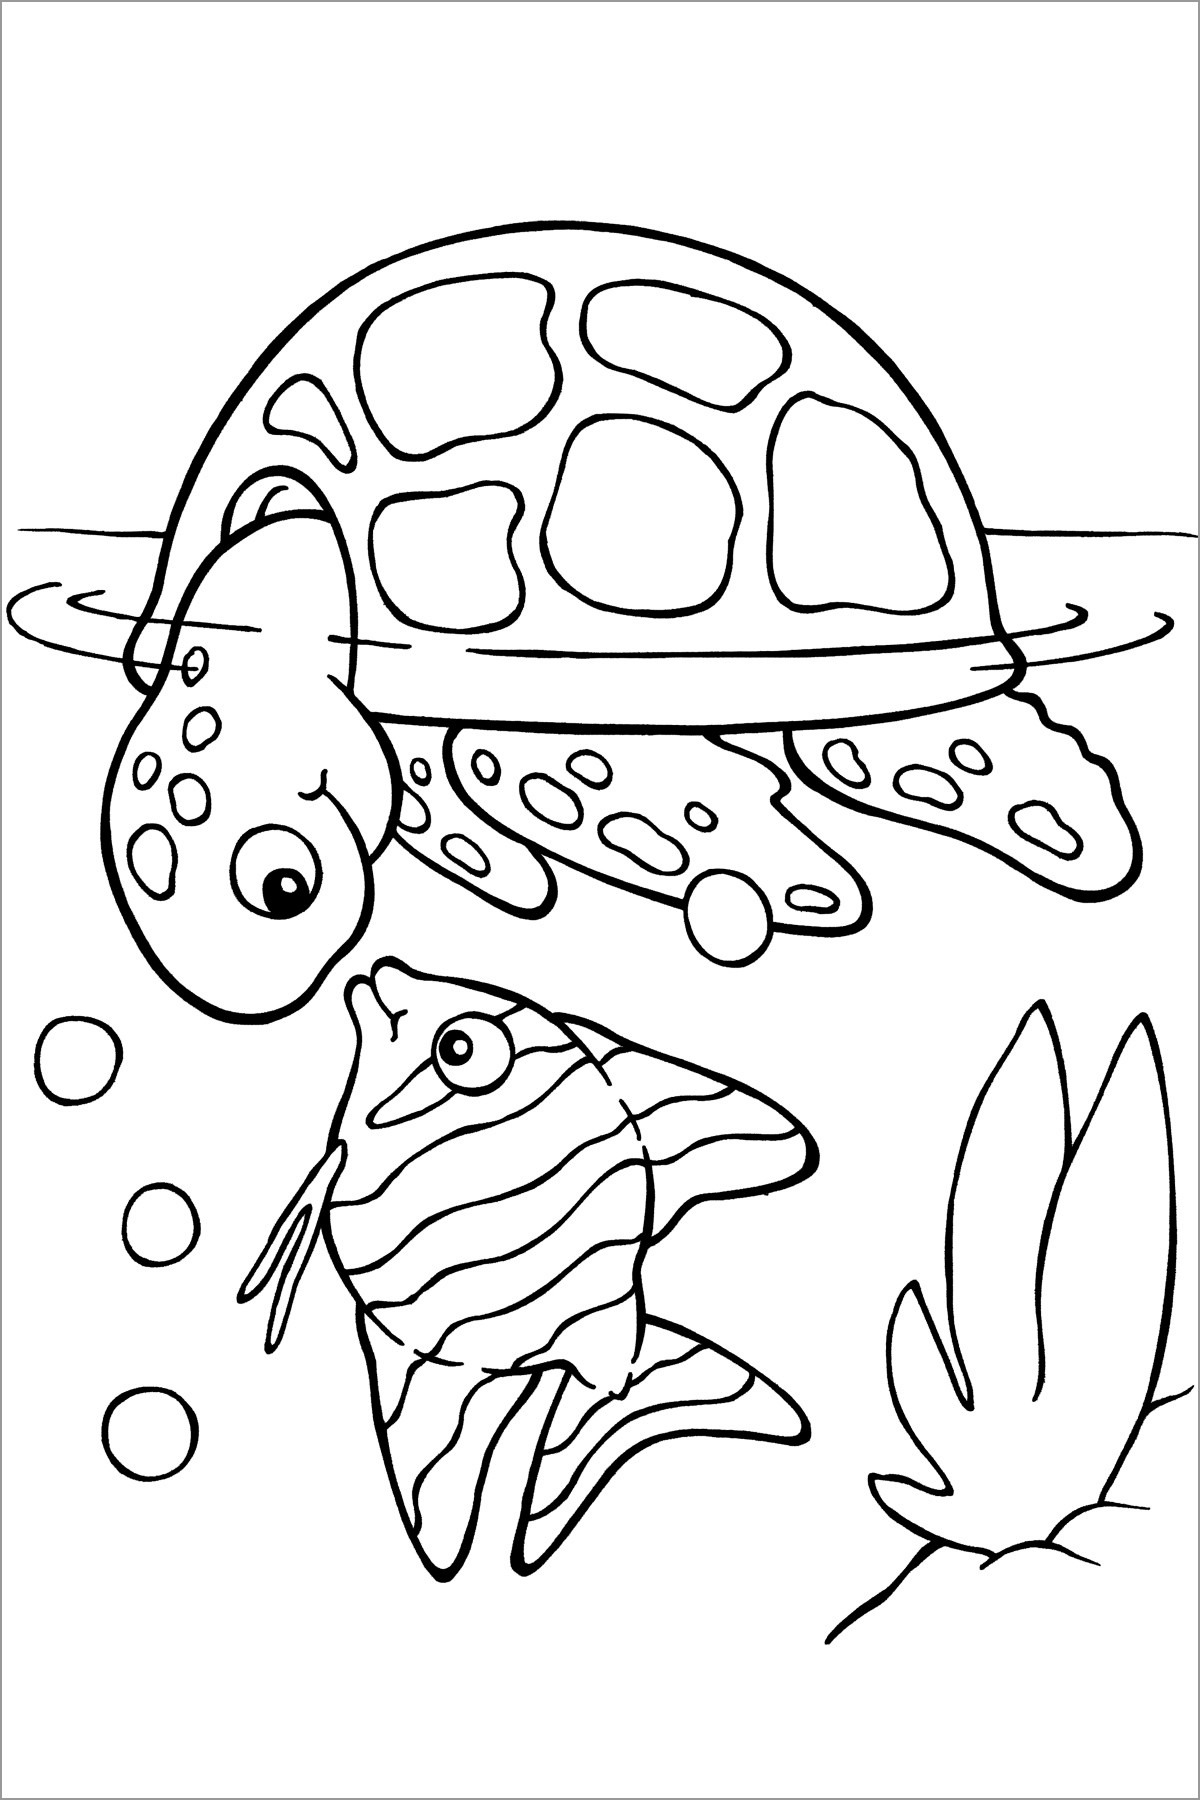 Sea Turtle and Fis Coloring Pages